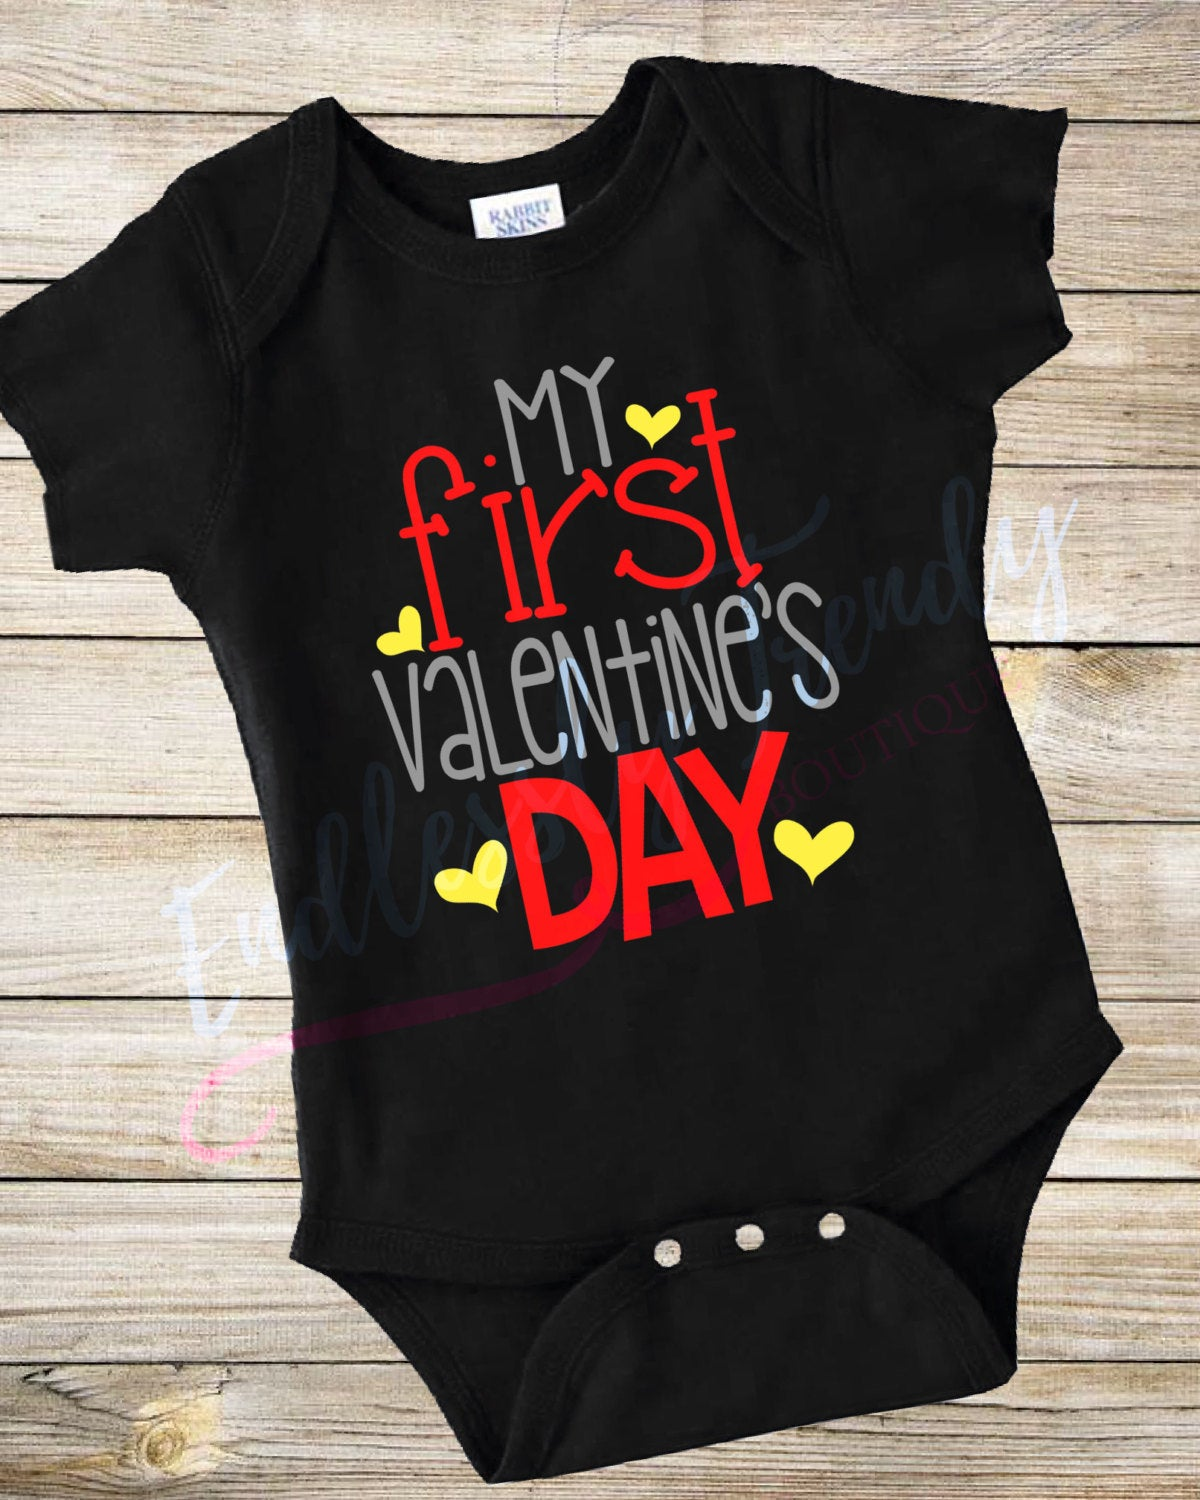 My First Valentine's Day Bodysuit - - Endlessly Trendy Boutique